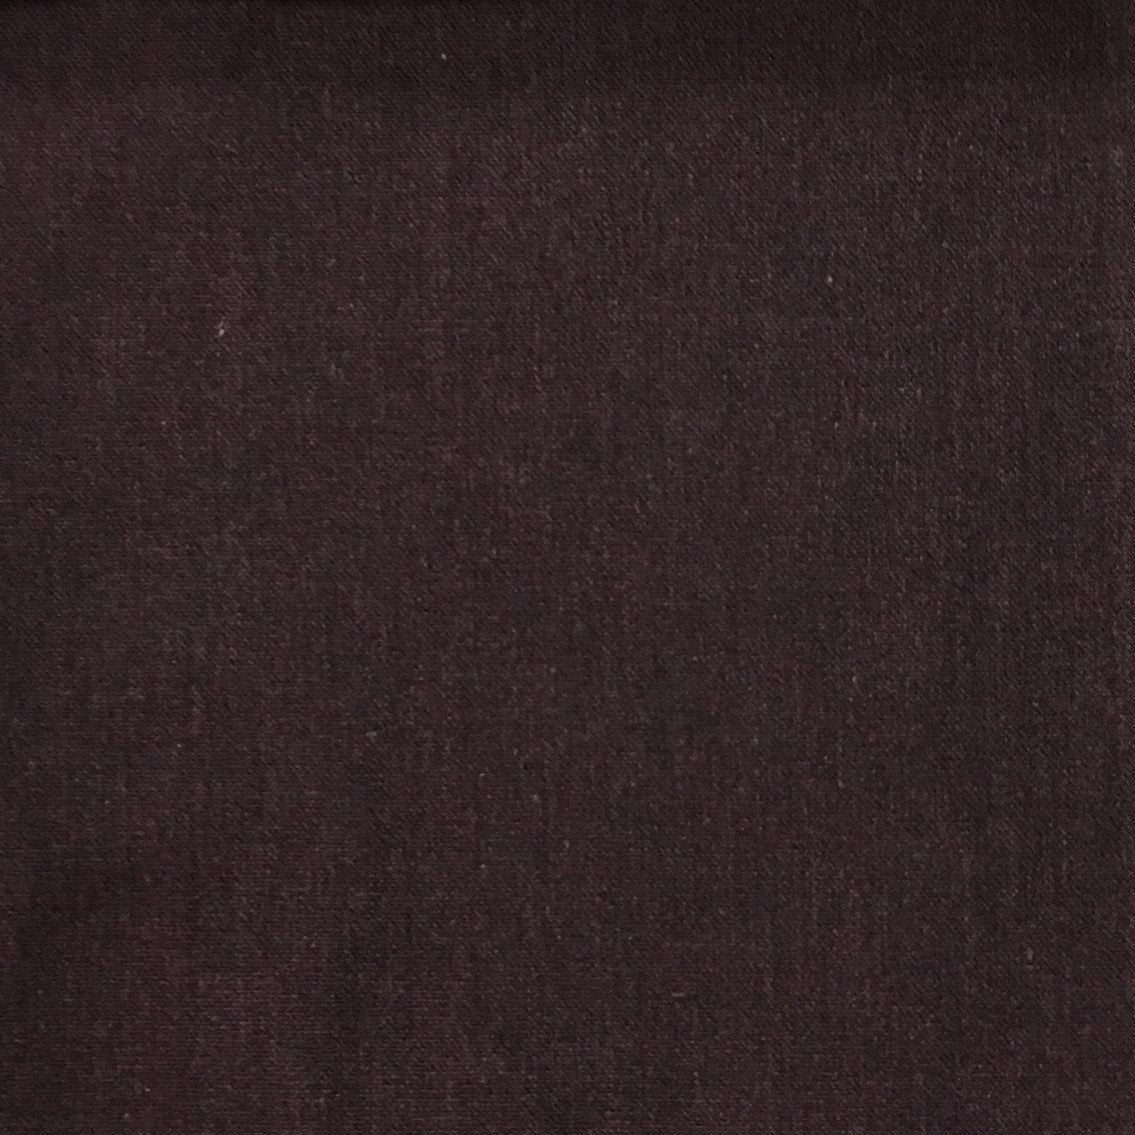 Aston cotton polyester blend upholstery fabric by the yard for Upholstery fabric for sale